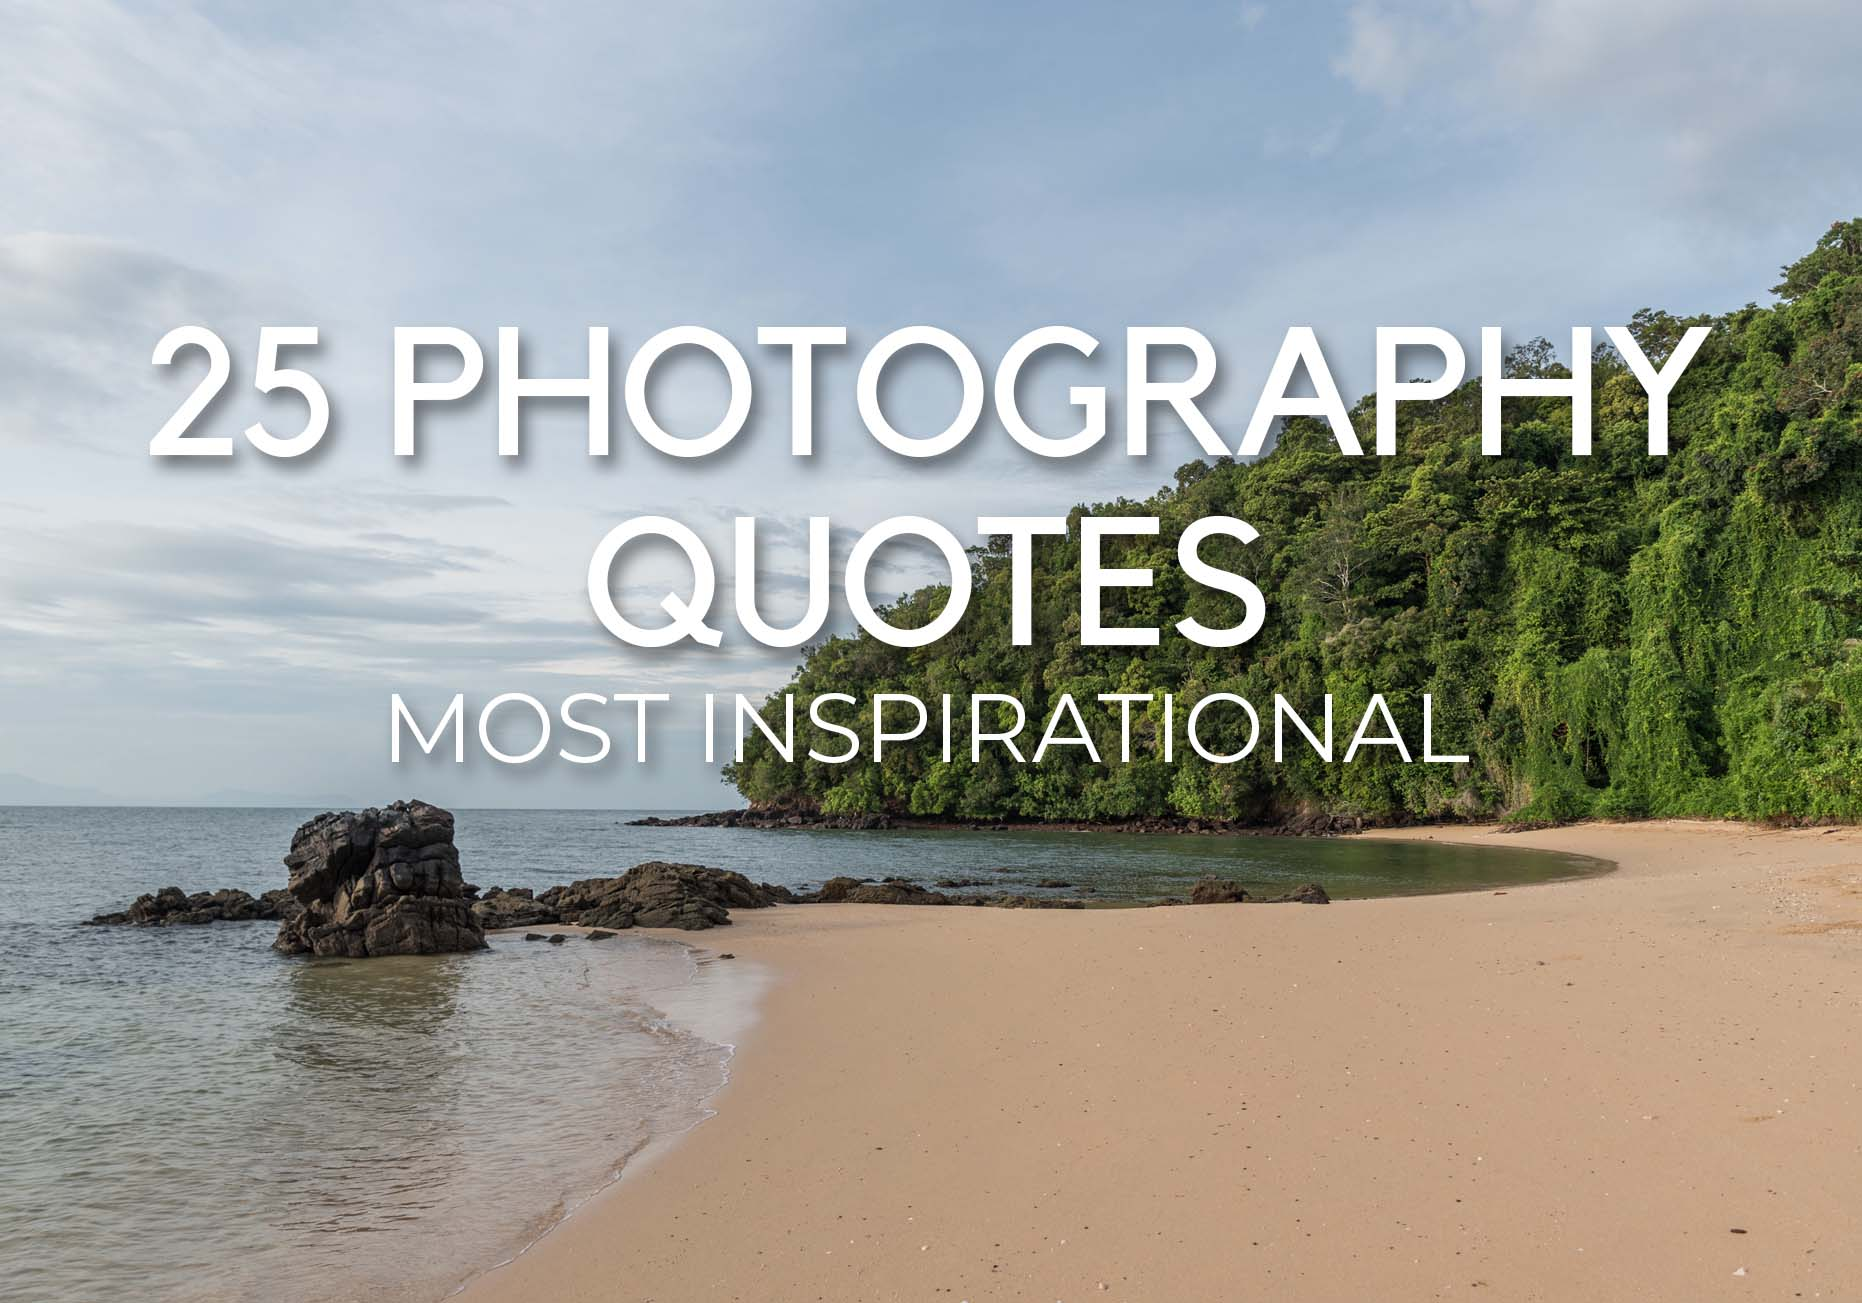 25 MOST INSPIRATIONAL PHOTOGRAPHY QUOTES – Instagram Feed & Bio